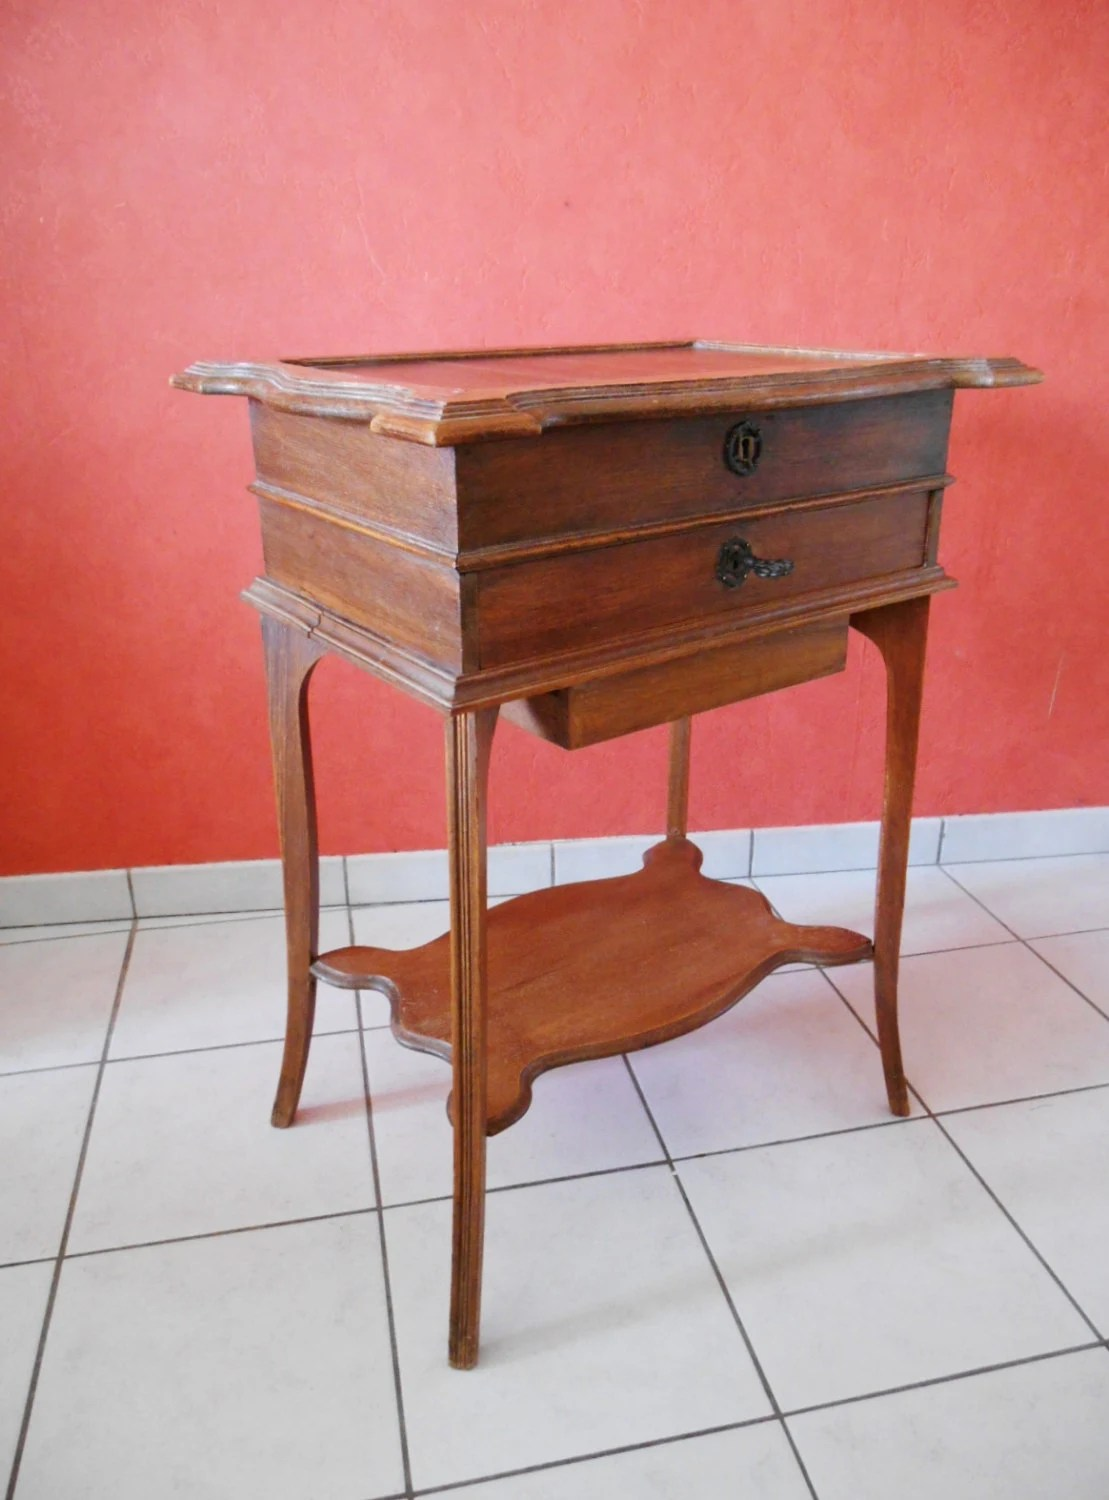 Antique Sewing Box Unique Sewing Cabinet Organizer With